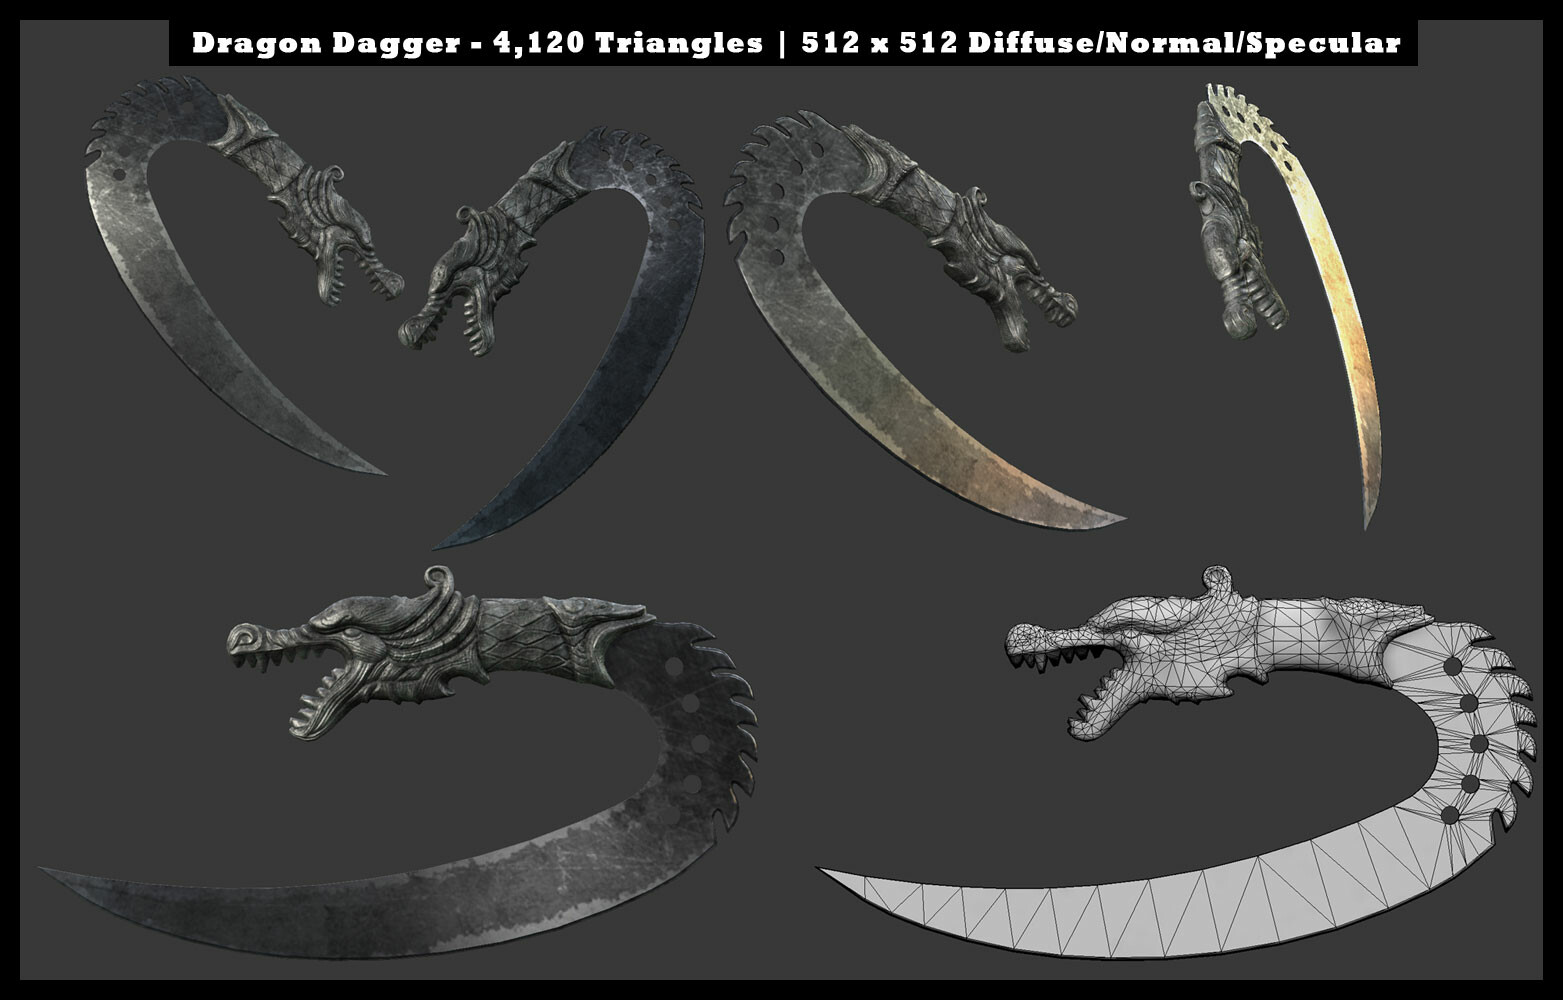 A fantasy blade inspired by Ulaks and the ceremonial knife from Far Cry 3.